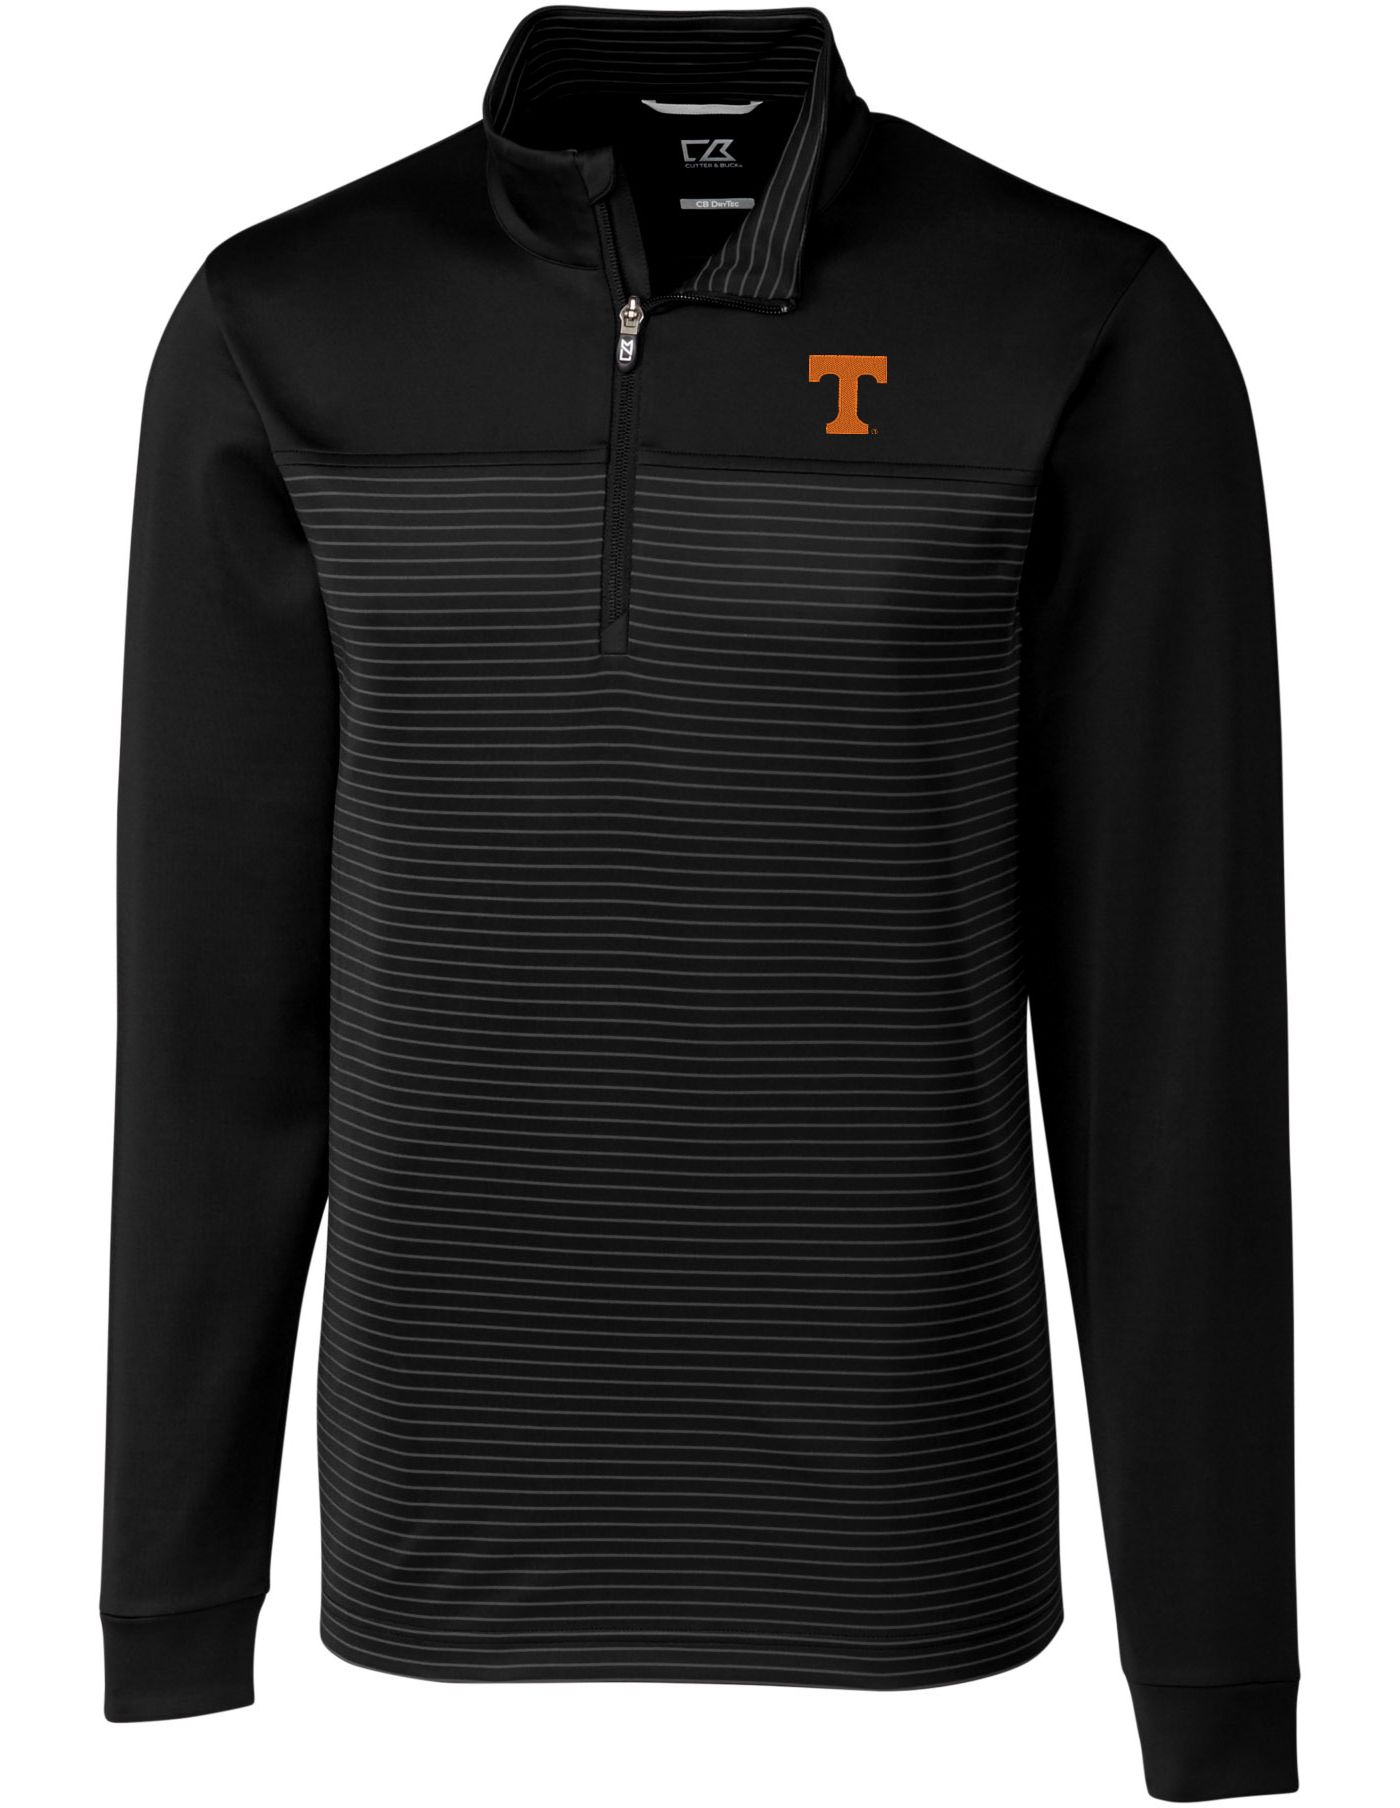 Cutter & Buck Men's Tennessee Volunteers Traverse Stripe Half-Zip Black Shirt